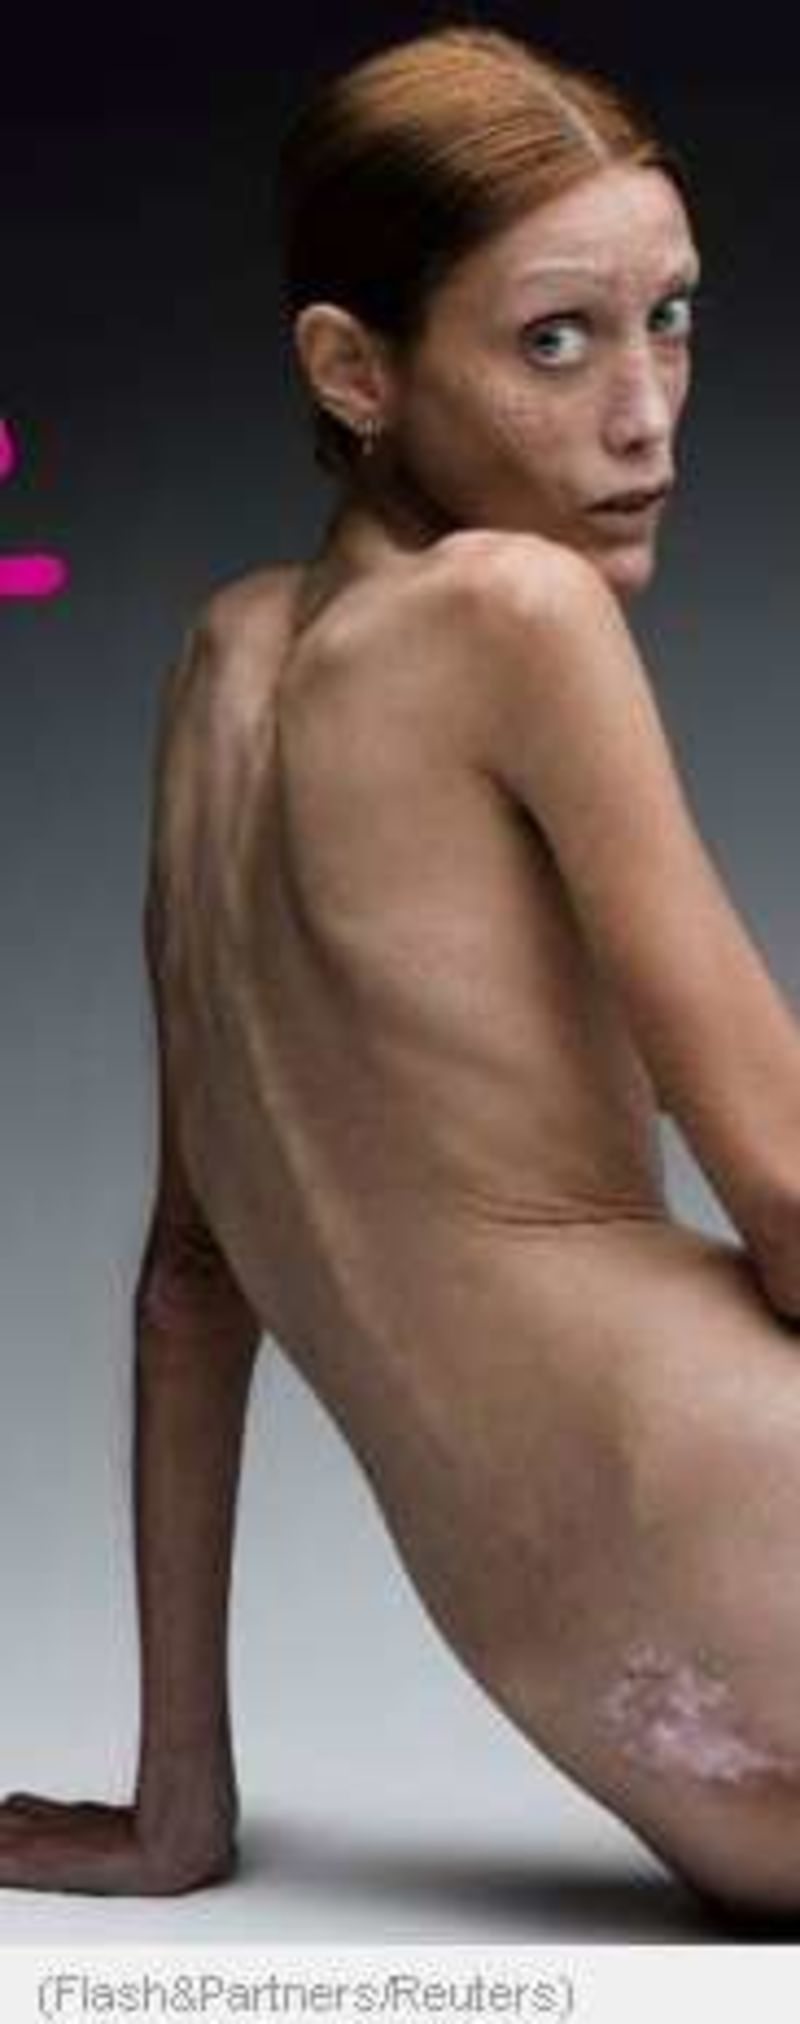 anorexic-man-naked